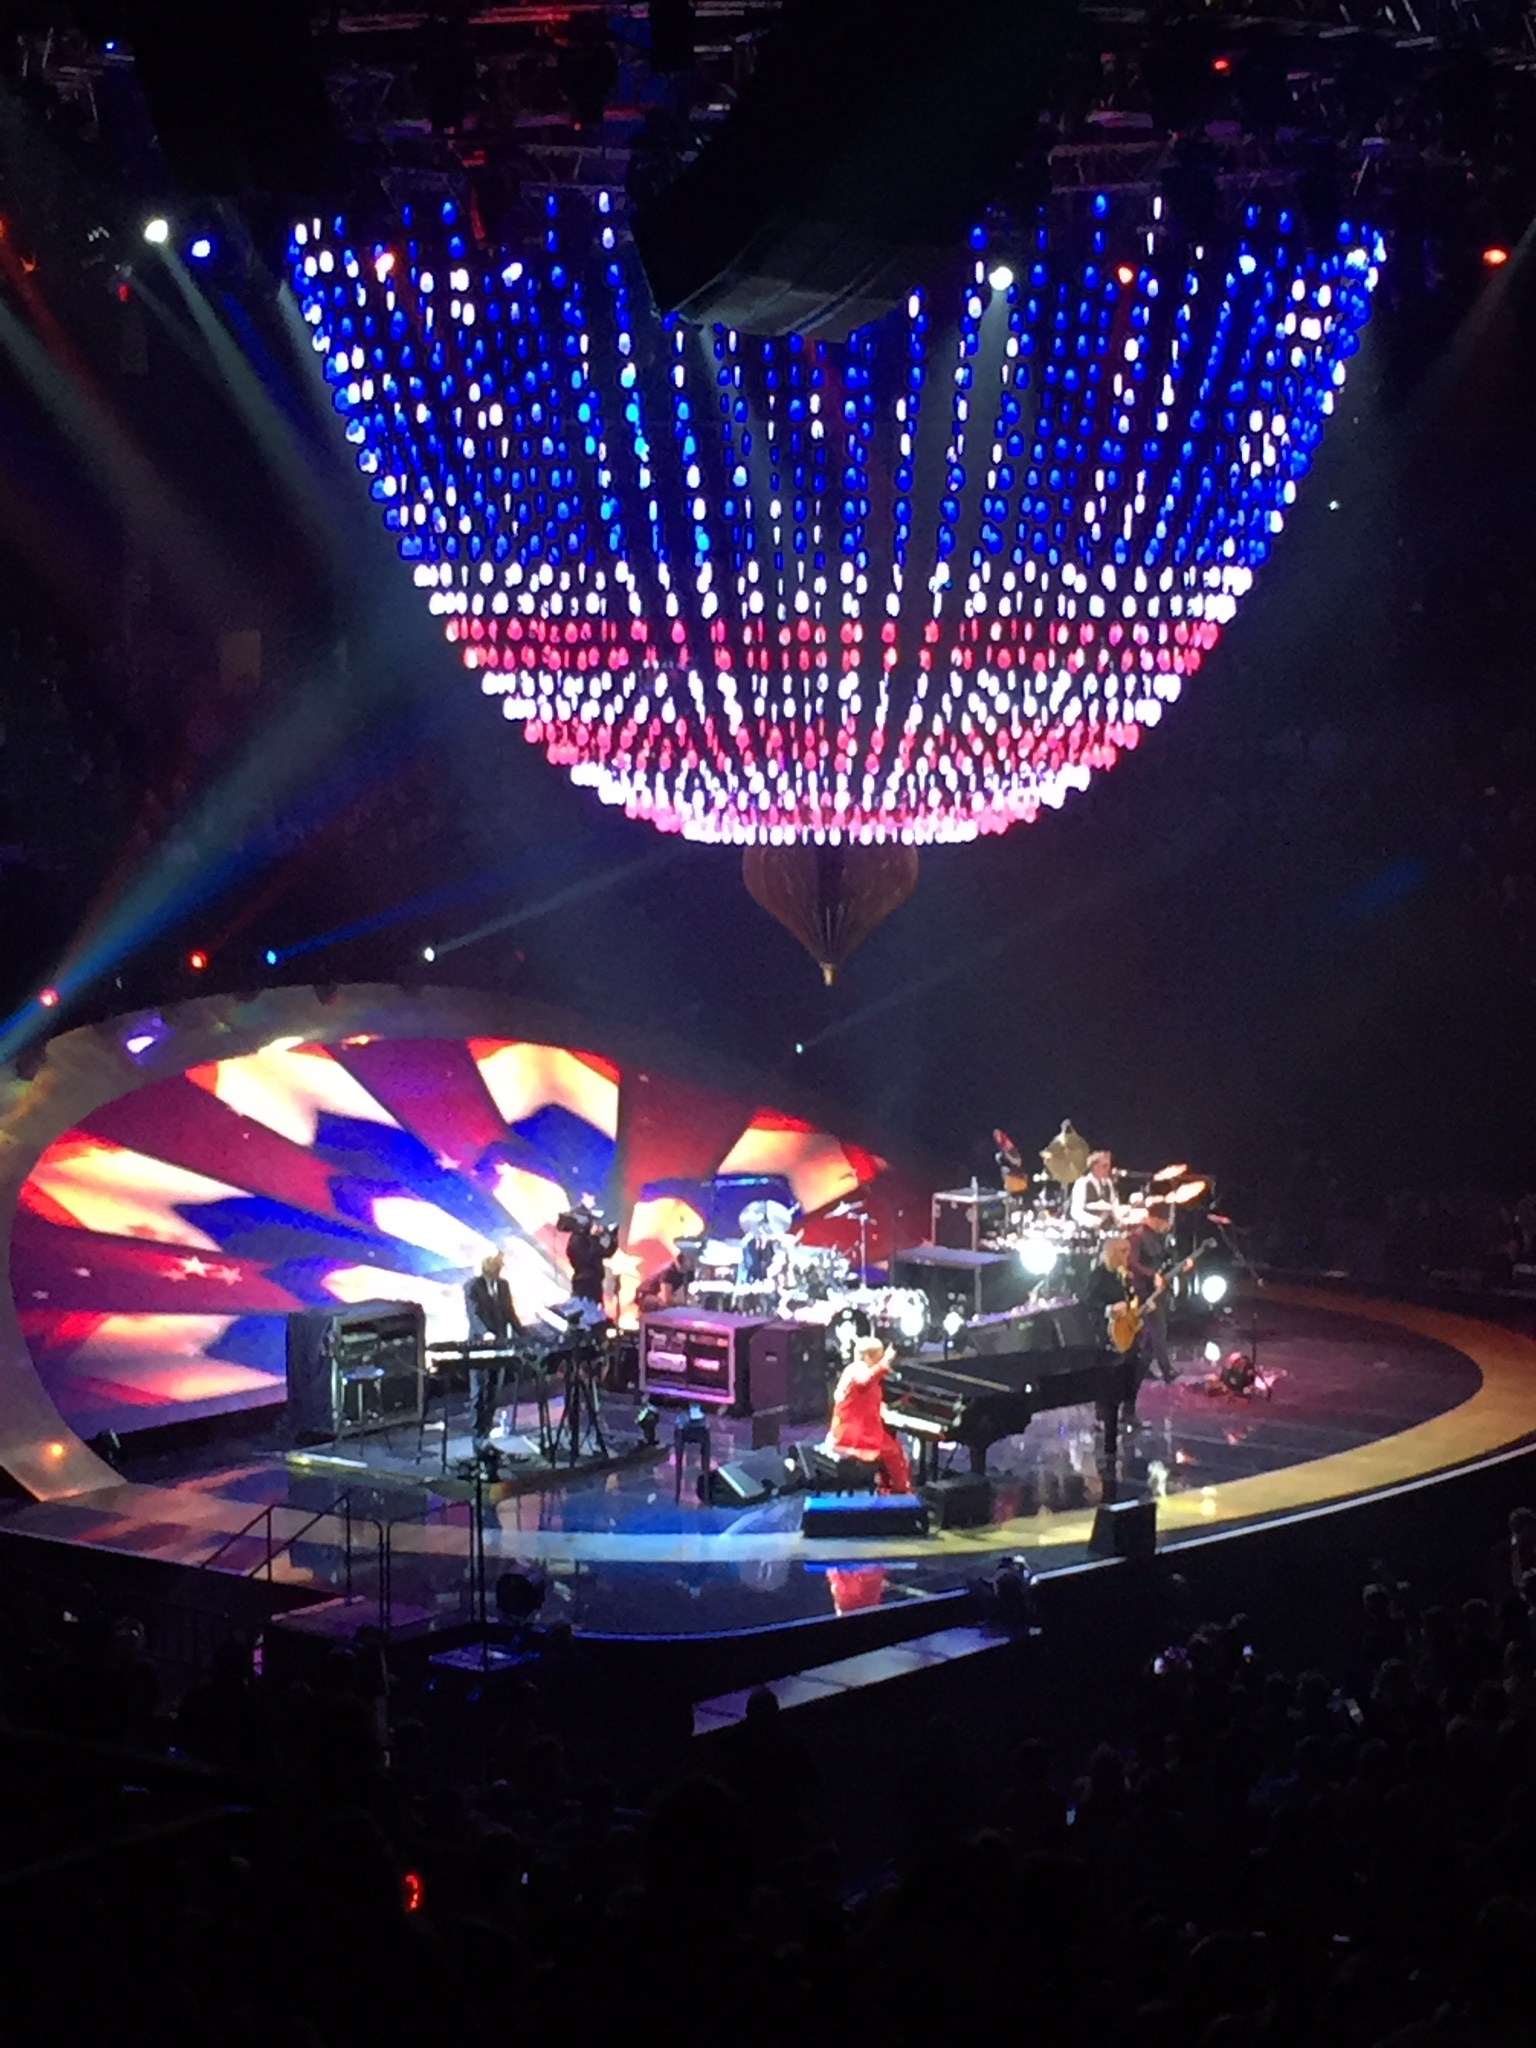 Elton John performing on New Year's Eve at The Barclay's Center in Brooklyn